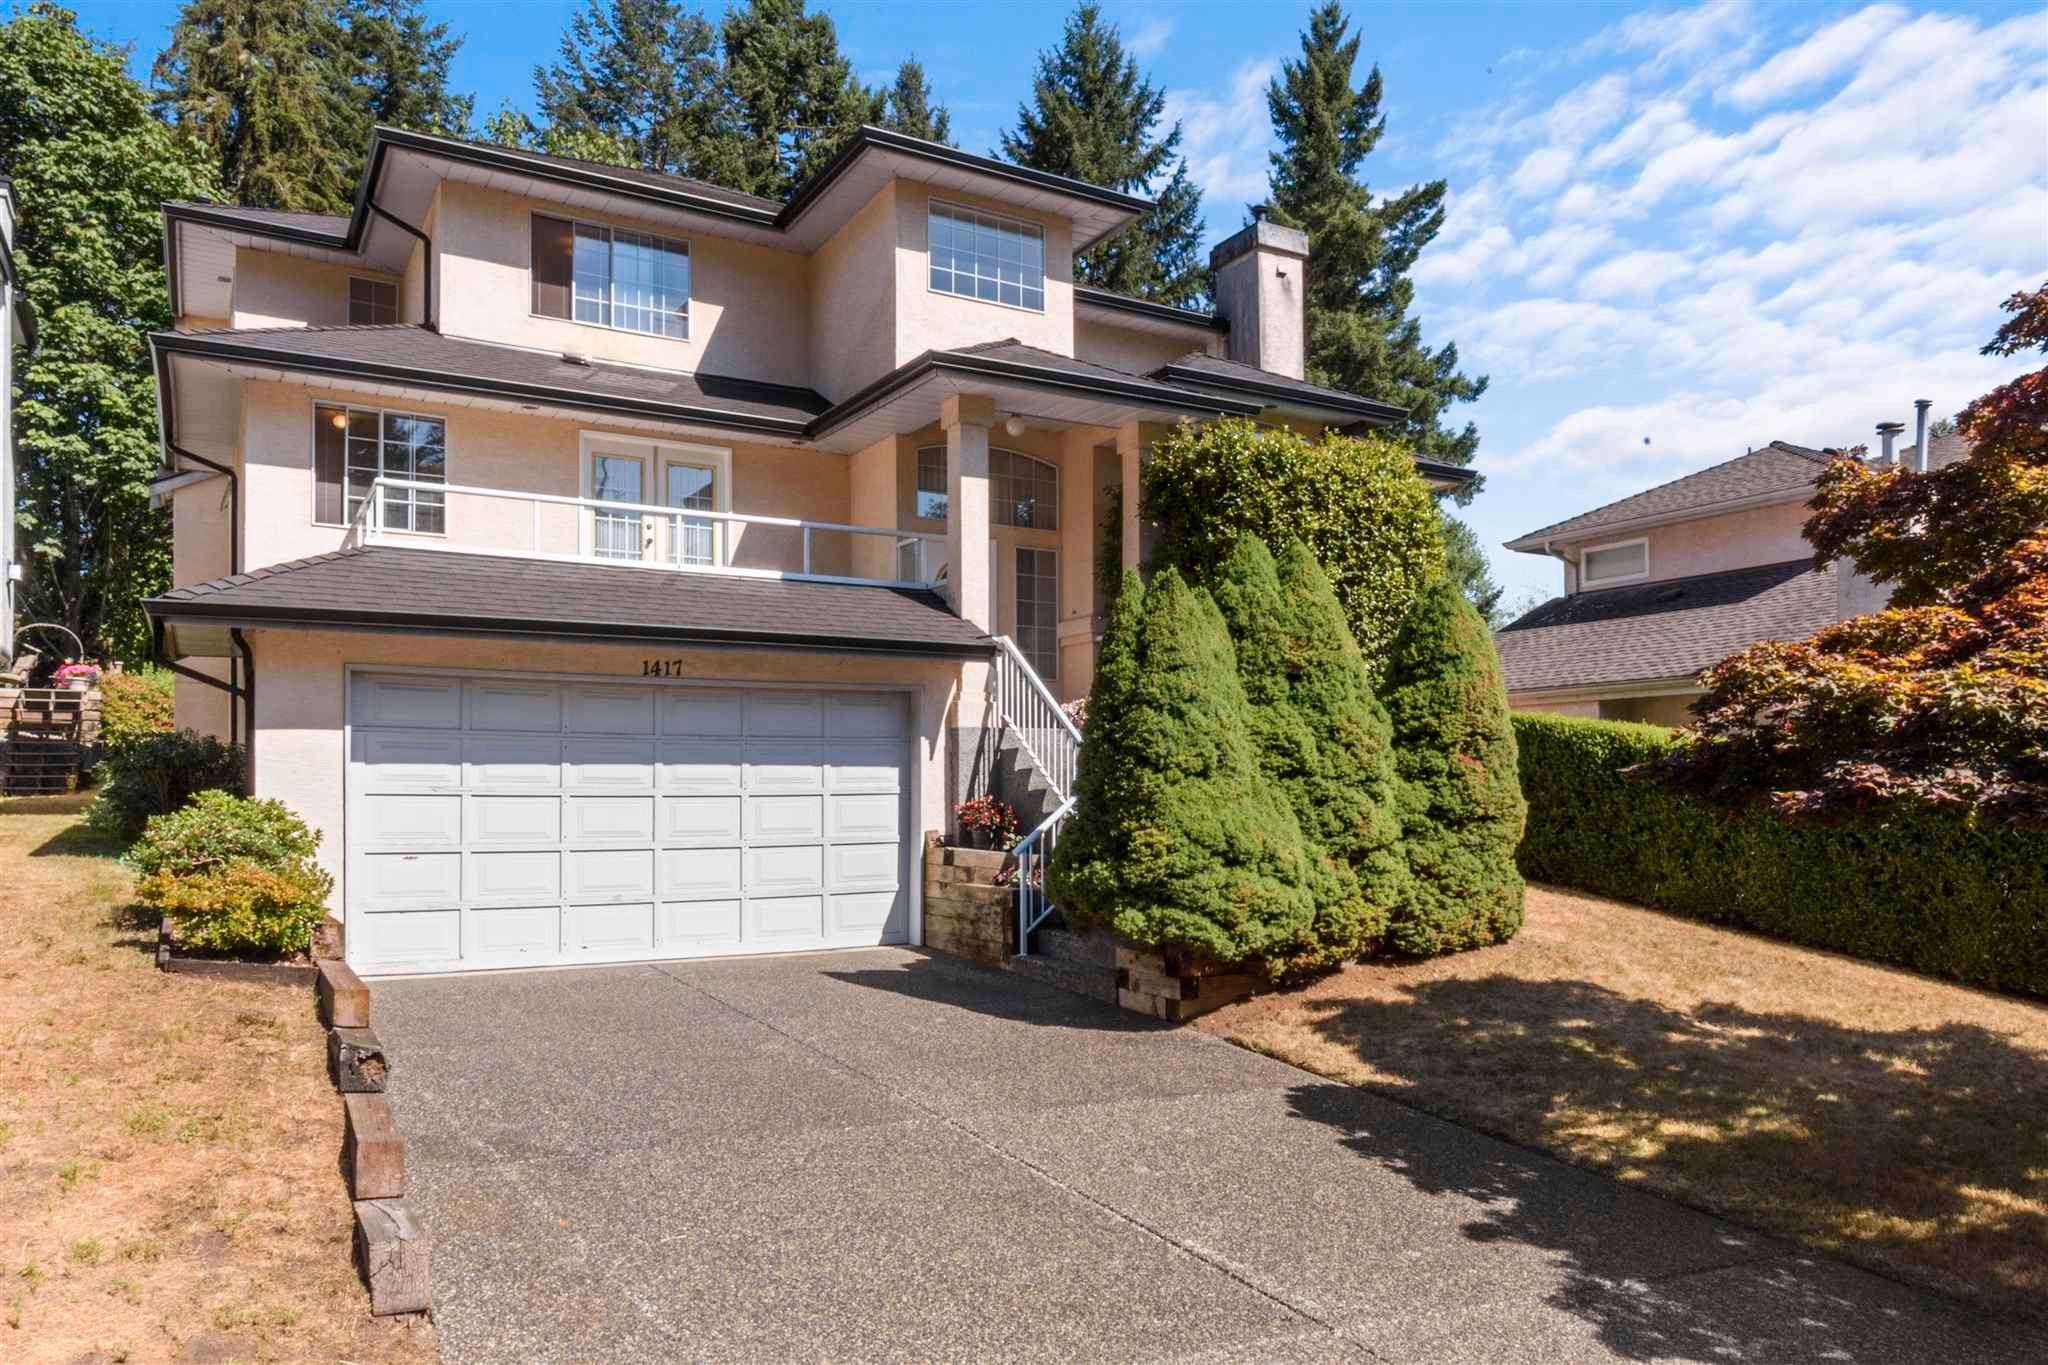 """Main Photo: 1417 PURCELL Drive in Coquitlam: Westwood Plateau House for sale in """"WESTWOOD PLATEAU"""" : MLS®# R2603711"""